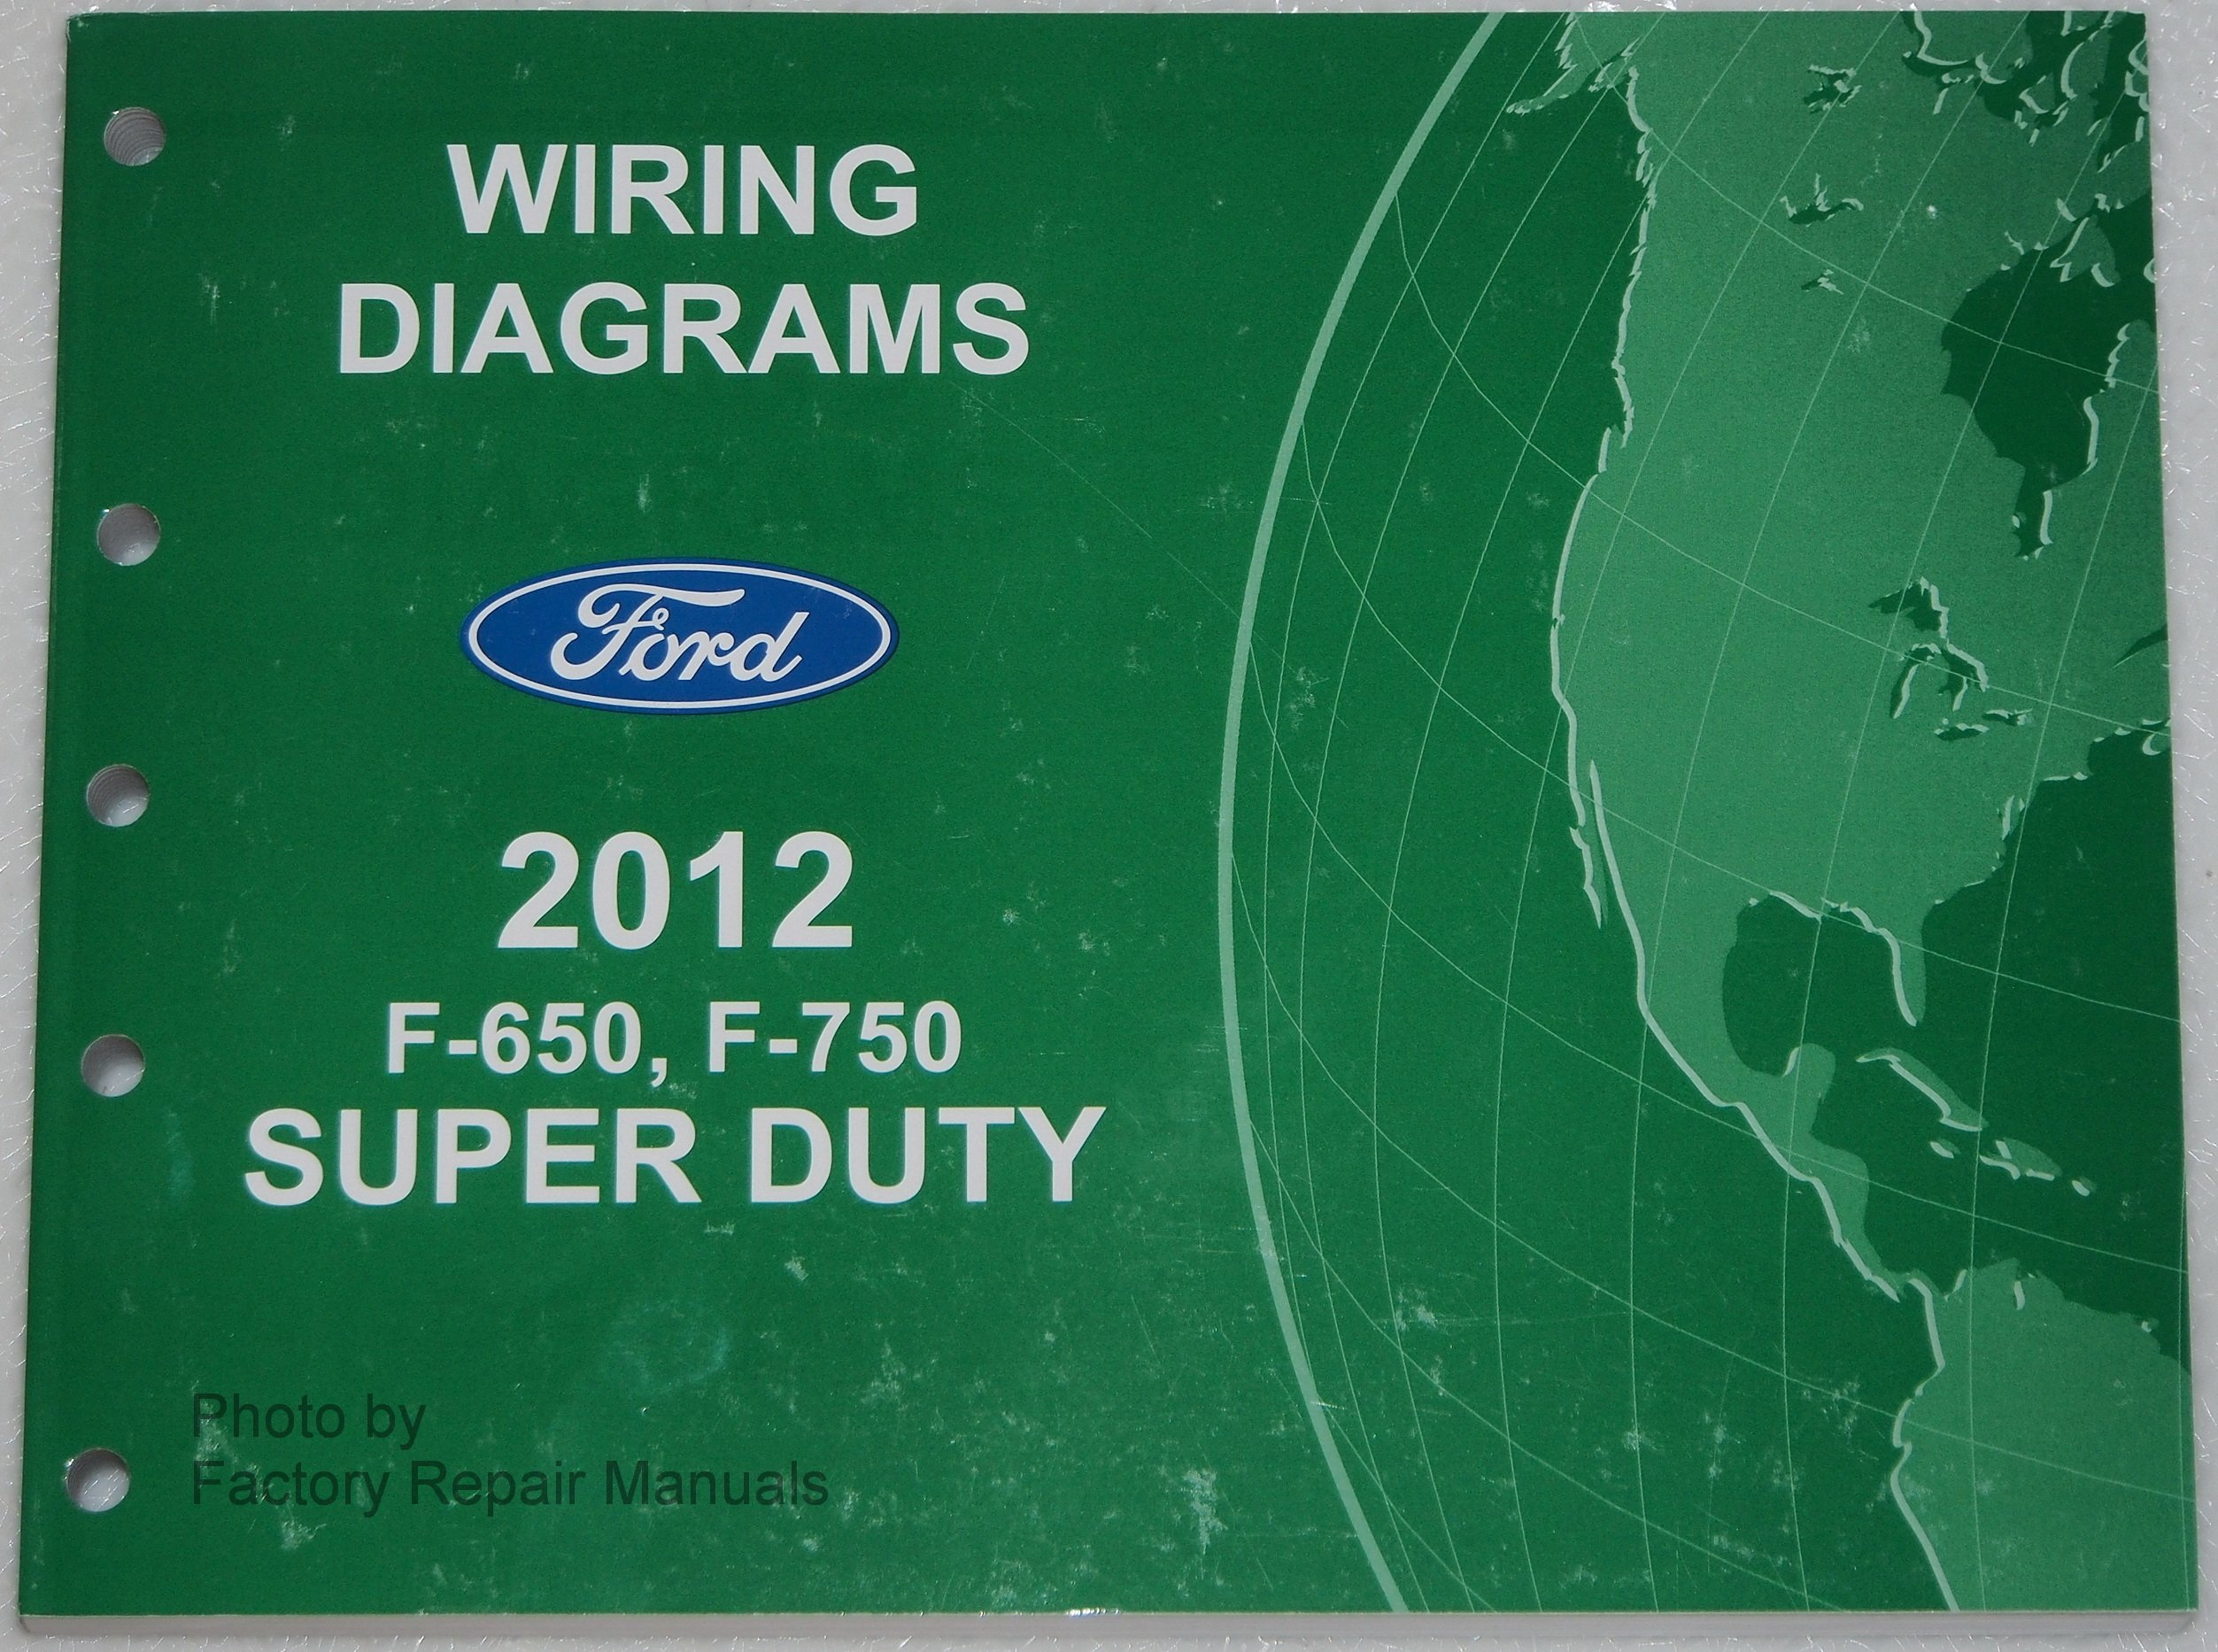 2012 F650/F750 WIRING DIAGRAM: Ford Motor Company: Amazon.com: Books